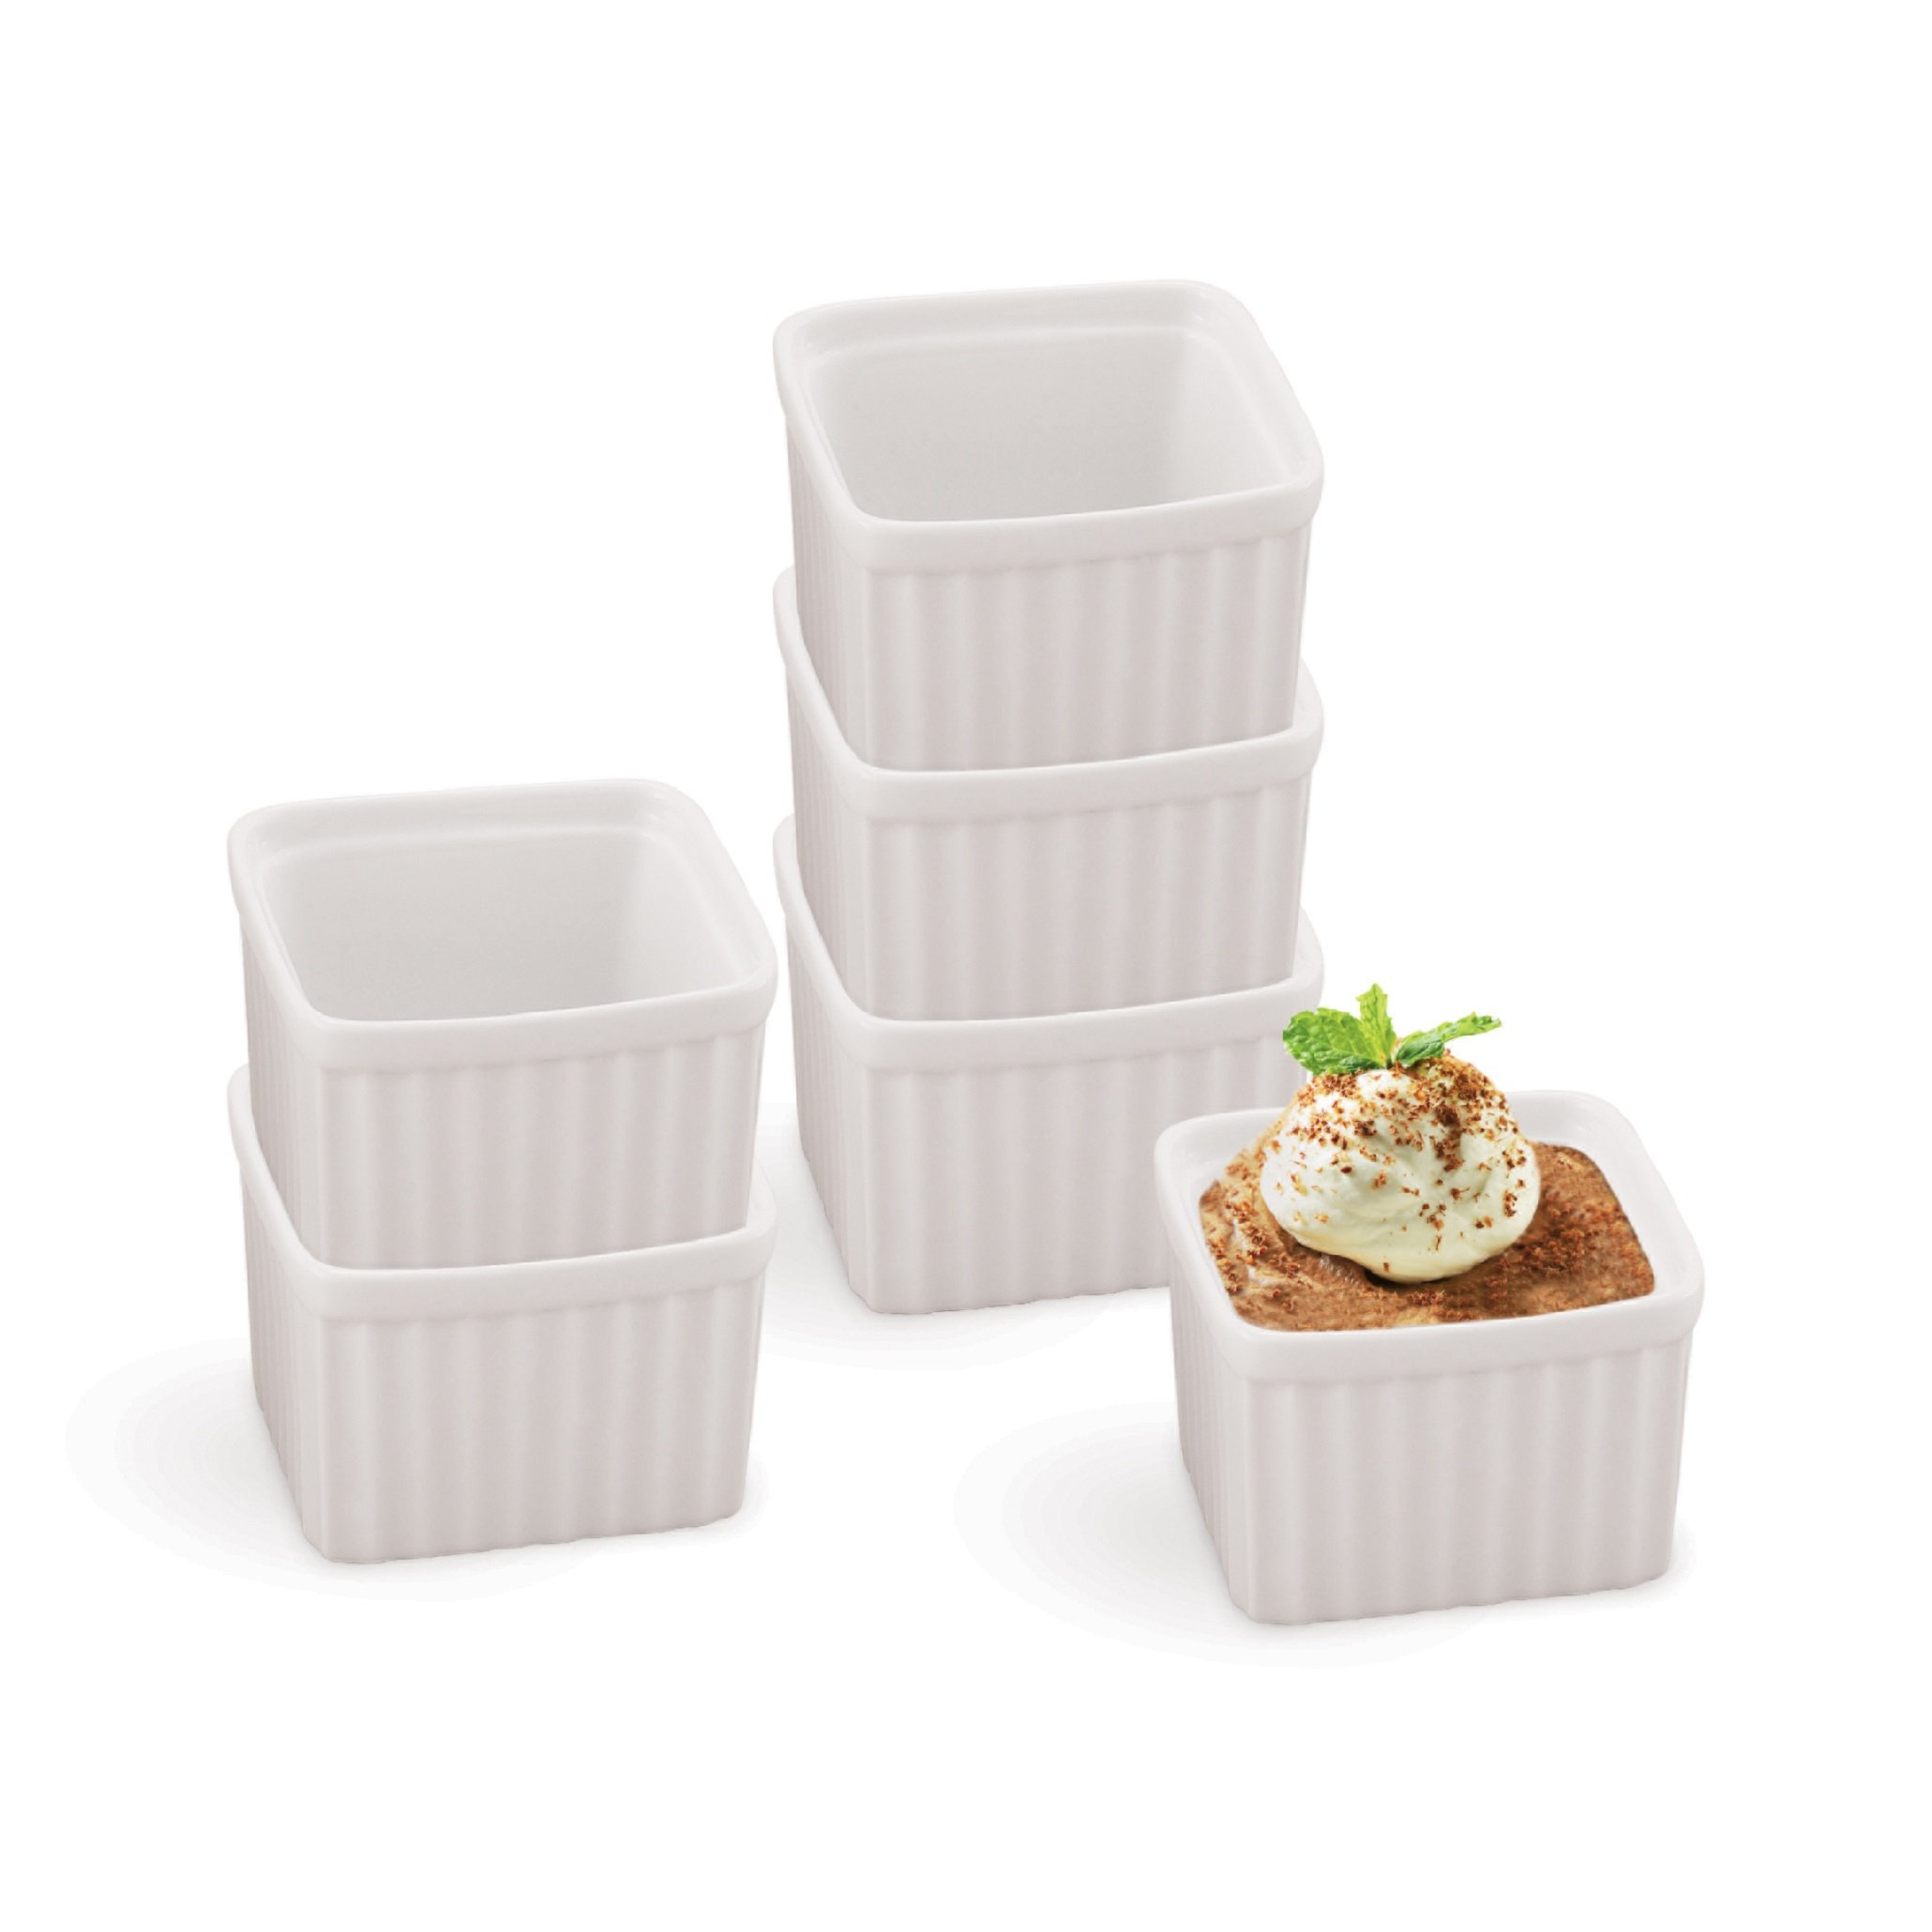 HIC Square Ramekins, Porcelain, 3-Inch, 6-Ounce Capacity, Set of 6